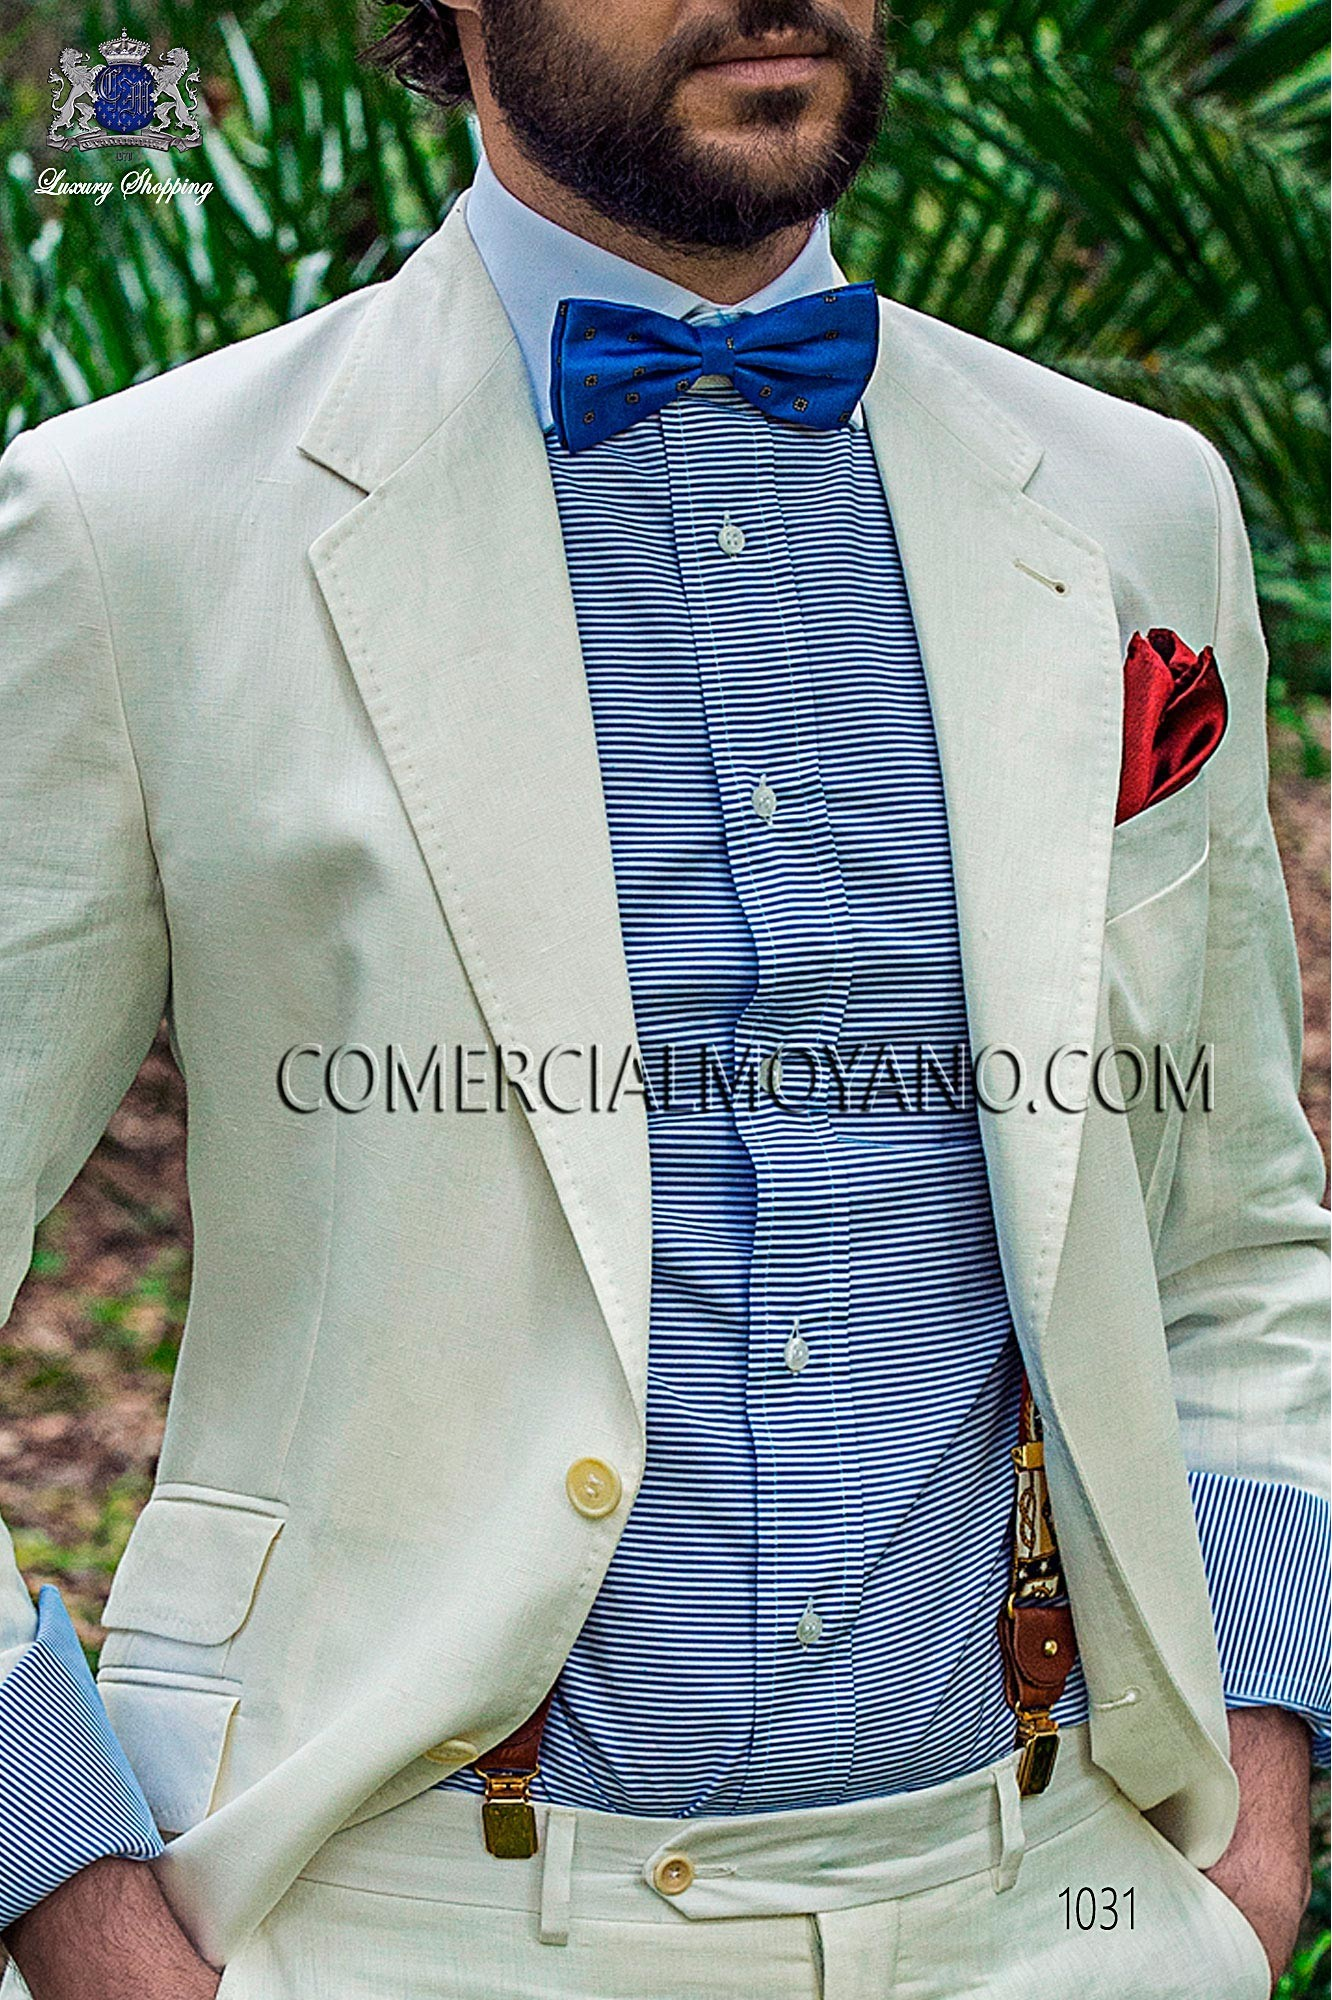 Italian hipster white men wedding suit, model: 1031 Ottavio Nuccio Gala Hipster Collection